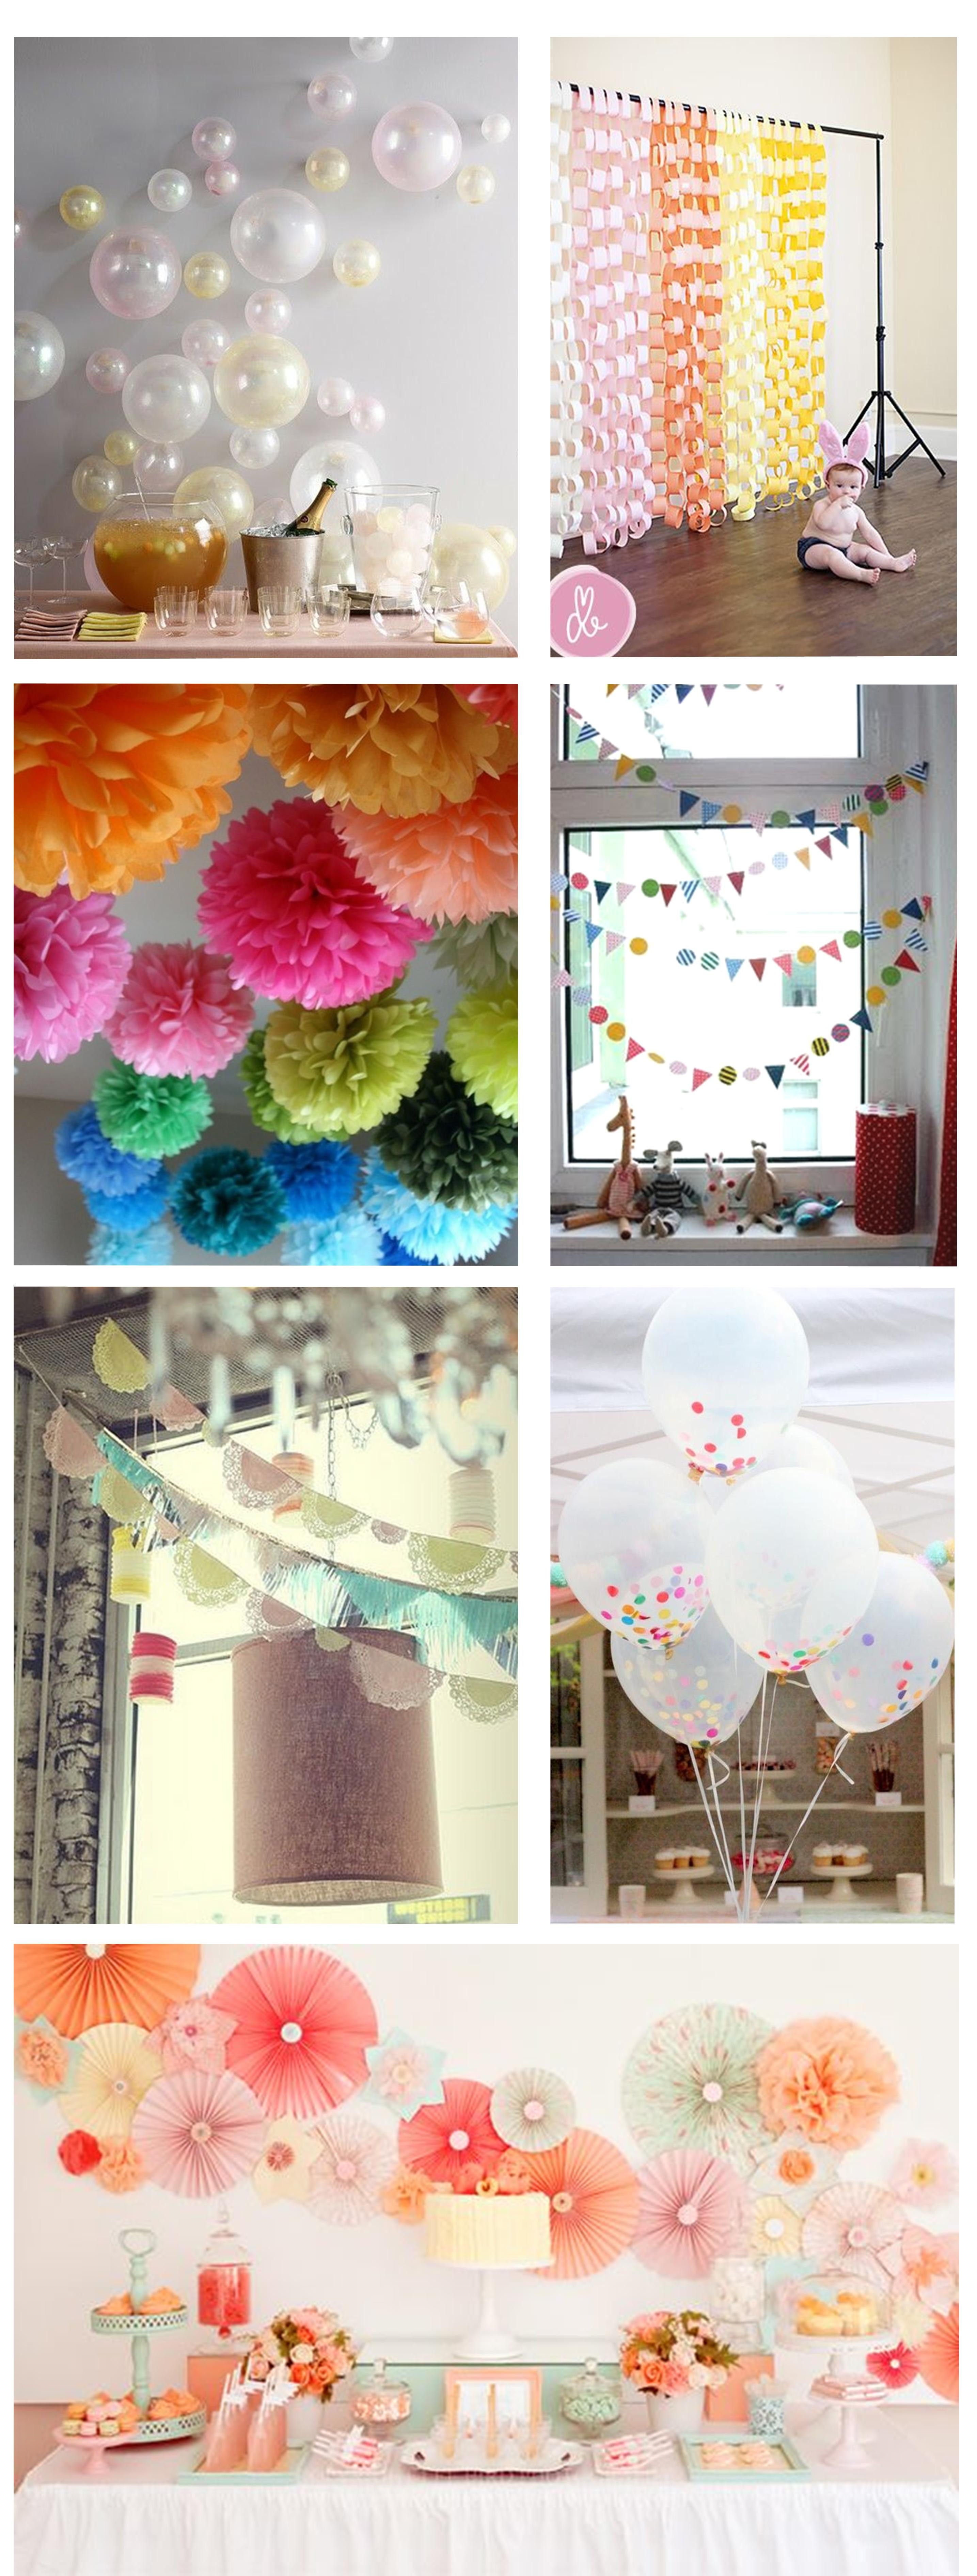 Best ideas about Diy Birthday Decor . Save or Pin Ideas for home made party decorations Now.